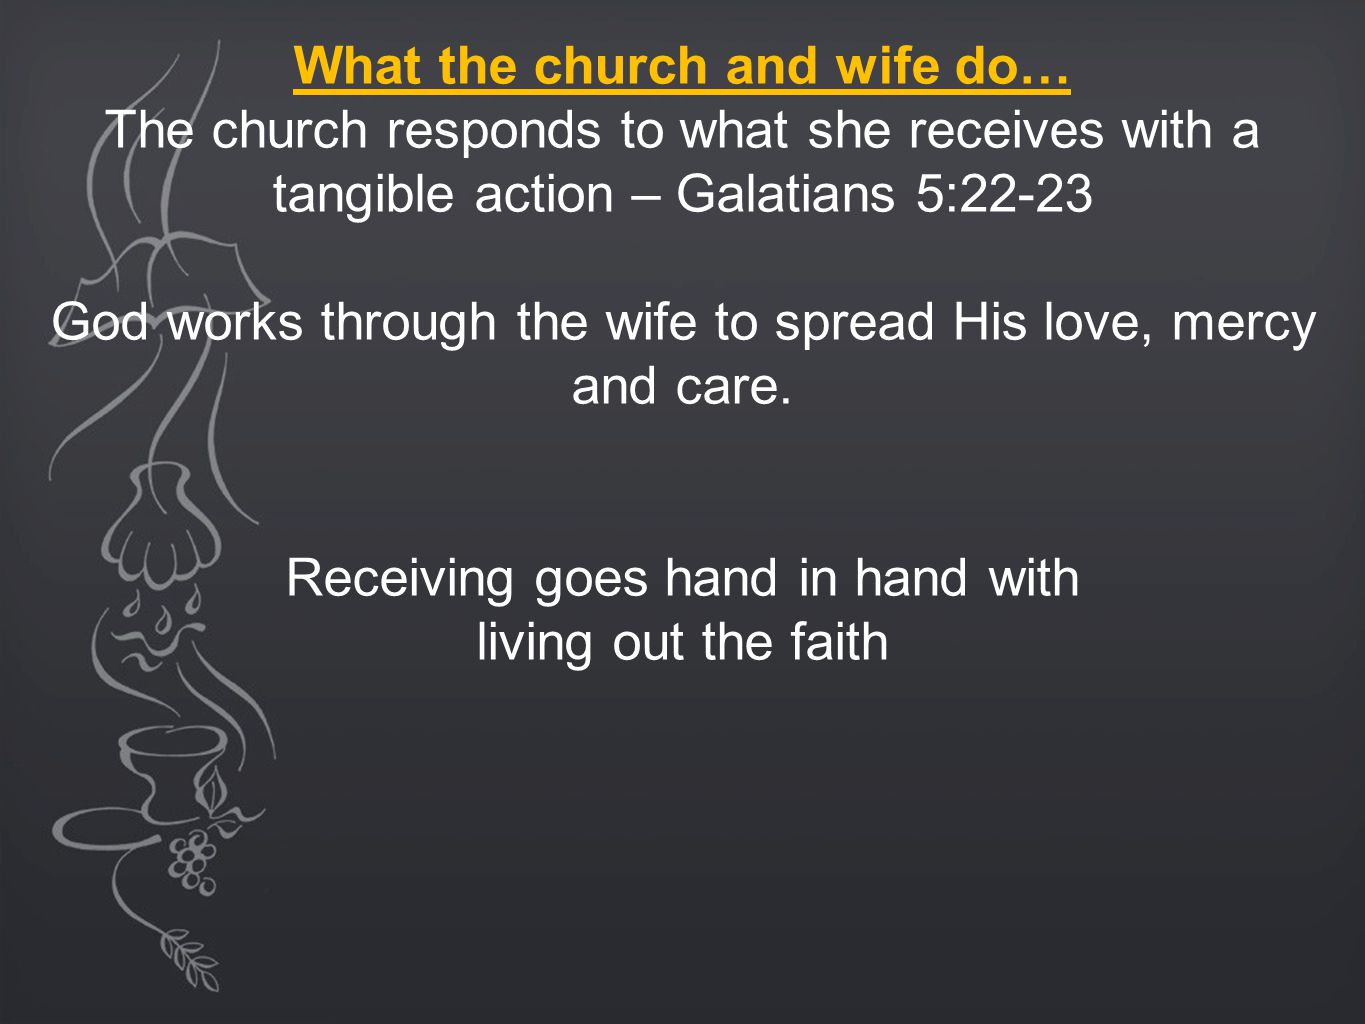 What the church and wife do… The church responds to what she receives with a tangible action – Galatians 5:22-23 God works through the wife to spread His love, mercy and care.